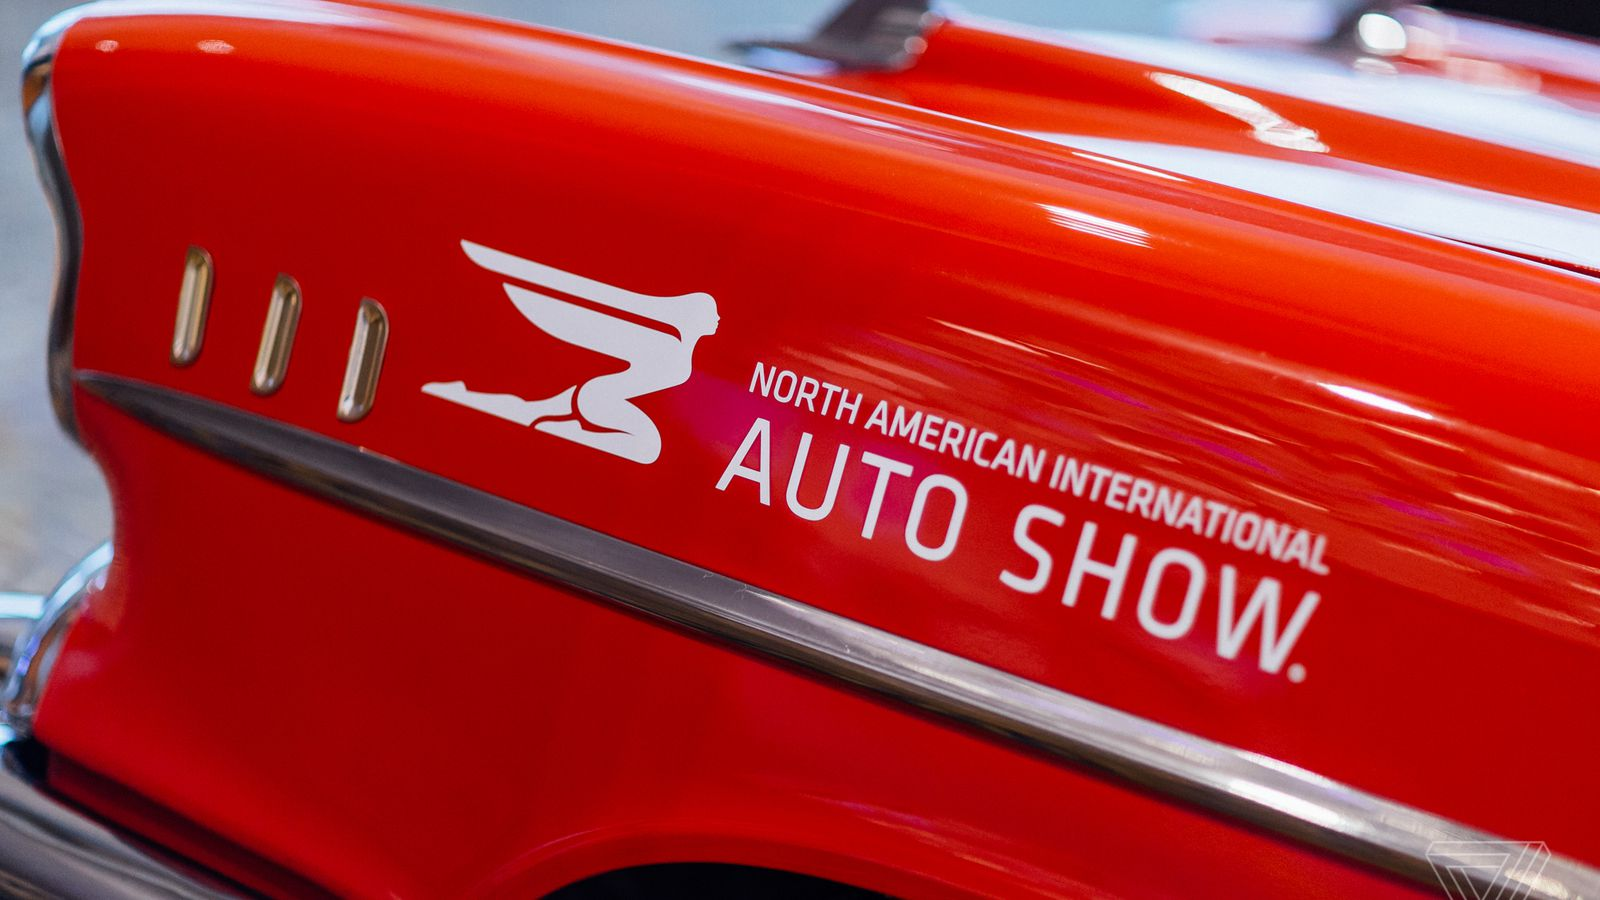 The 2017 Detroit Auto Show in pictures